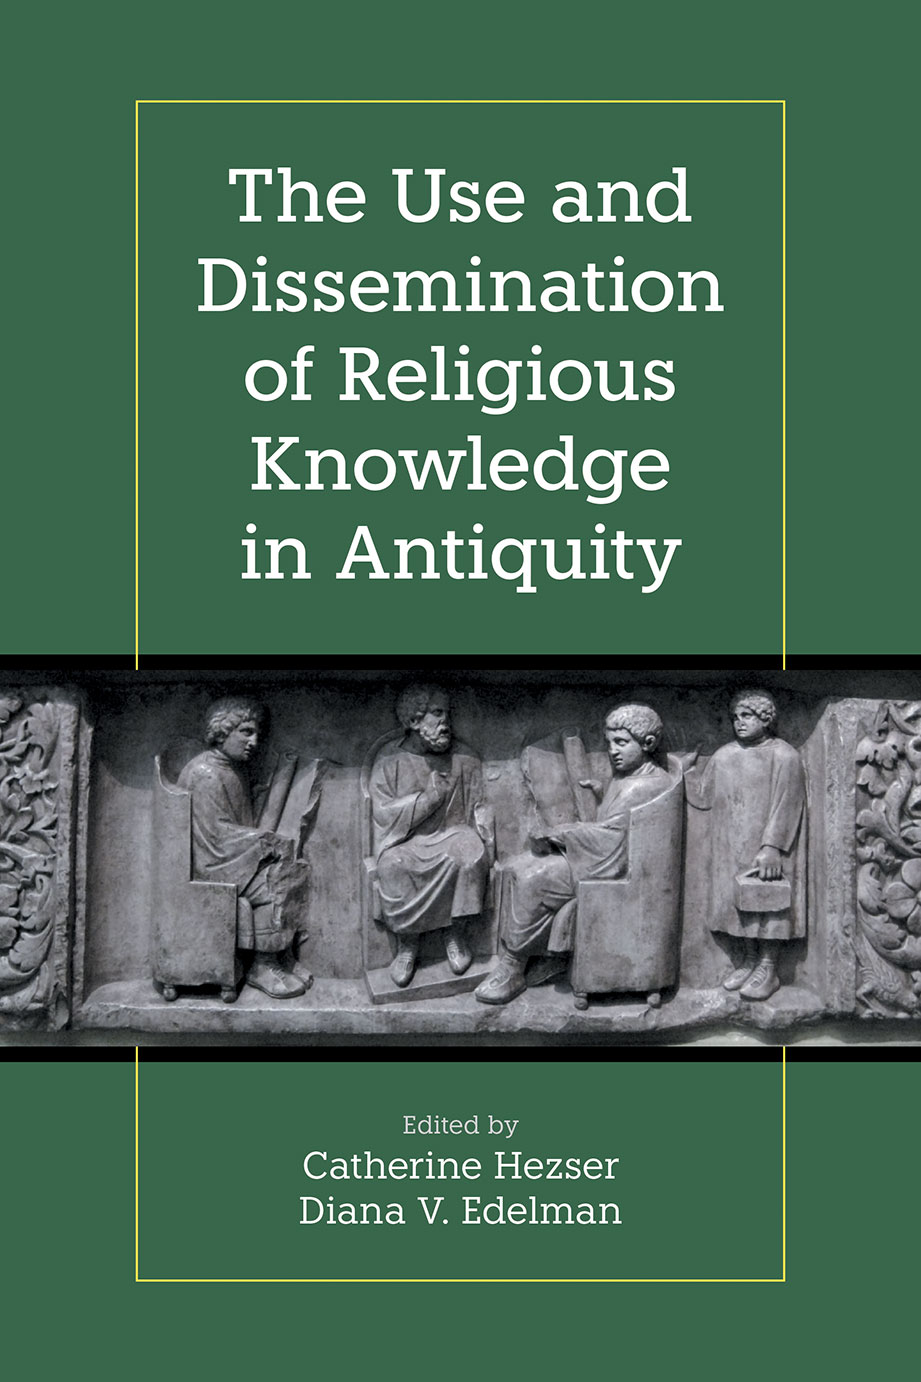 The Use and Dissemination of Religious Knowledge in Antiquity - Catherine Hezser